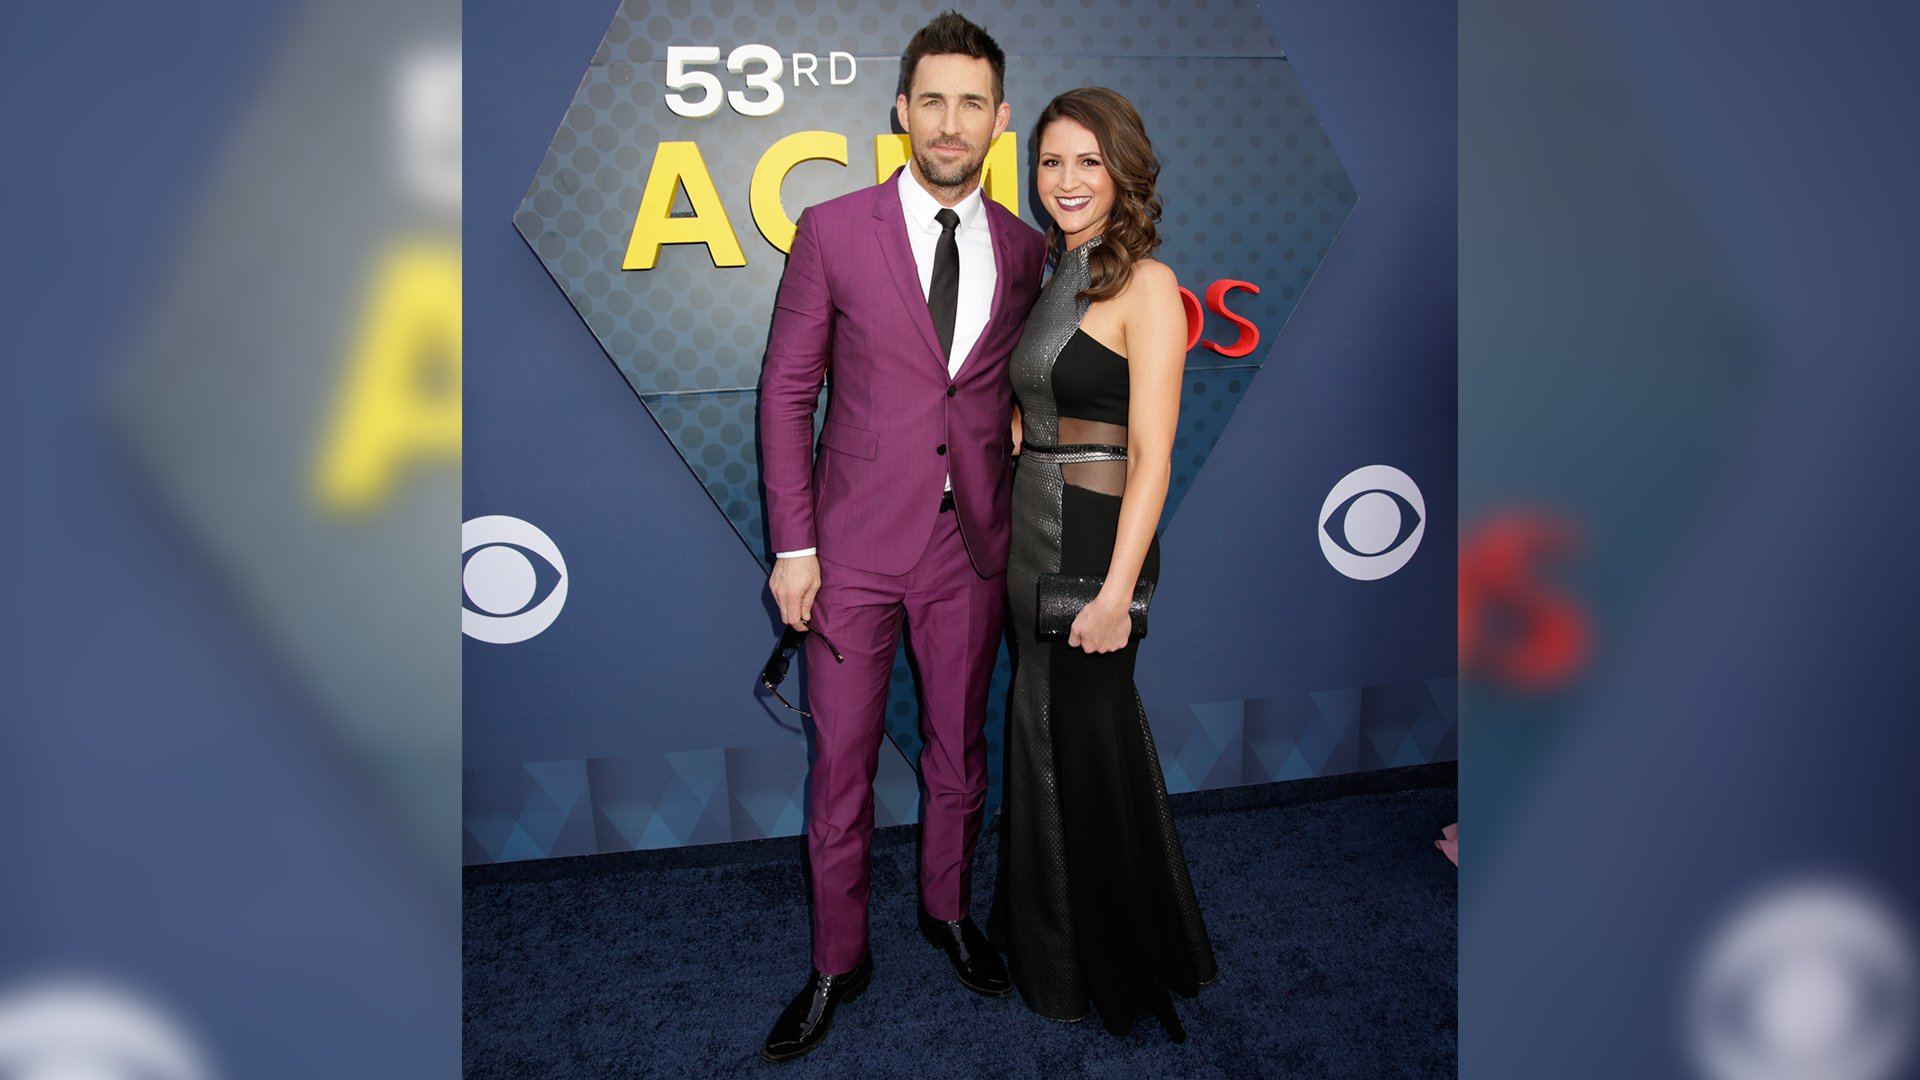 Jake Owen pops in purple on the 53rd ACM Awards red carpet.